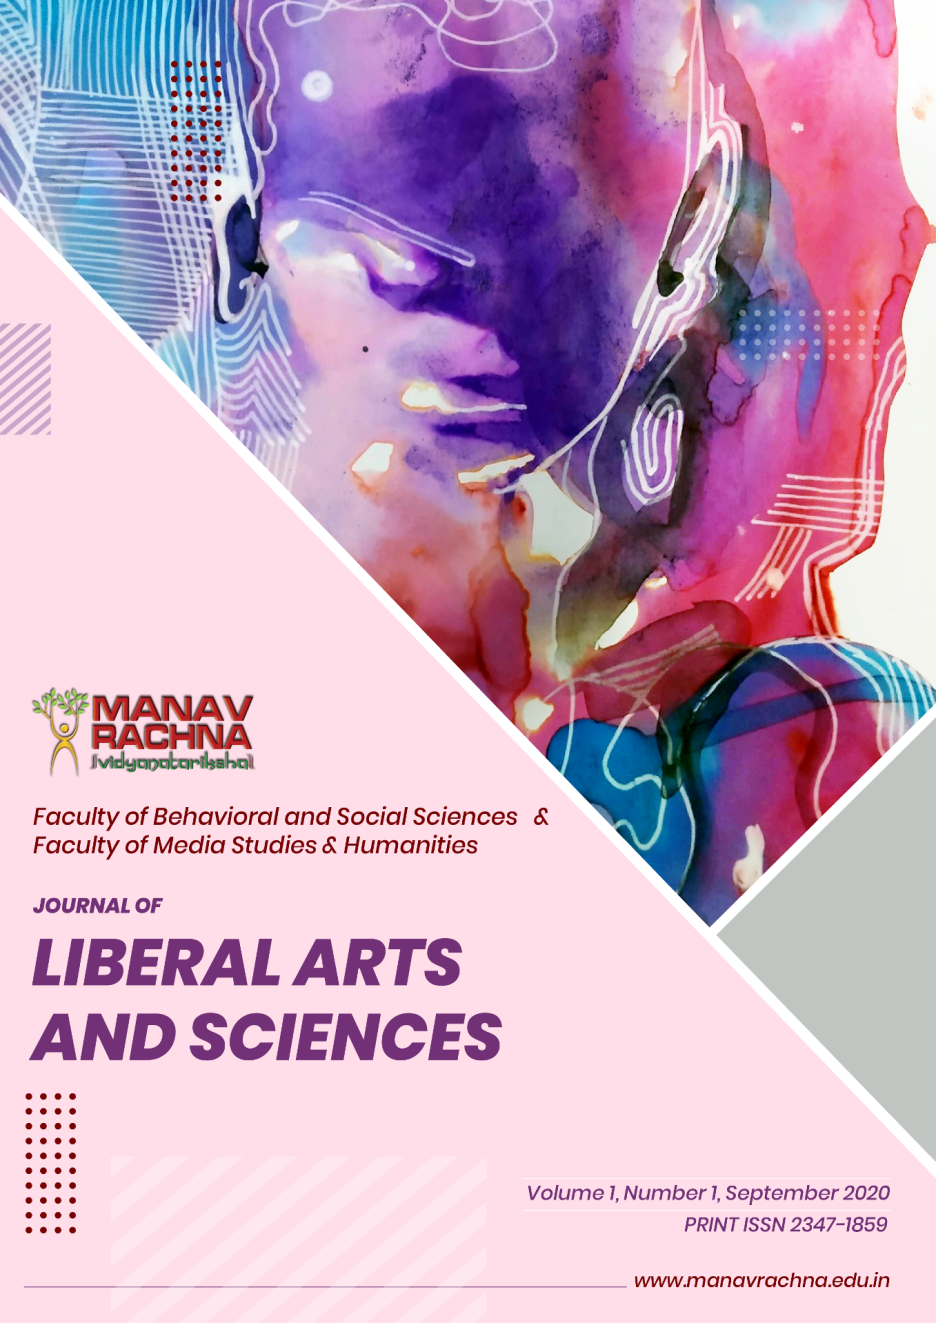 Journal of Liberal Arts and Sciences provides an intellectual, knowledge platform for trans-disciplinary research and wisdom on contemporary issues in diverse areas such as psychology, economics, political science, public administration, fine arts, music, social work, sociology, cross-cultural studies, gender studies and rights,  history, philosophy, women rights, geography, anthropology, education, legal studies, development studies and practice, international relations and ethics, applied policy research along with other disciplines.